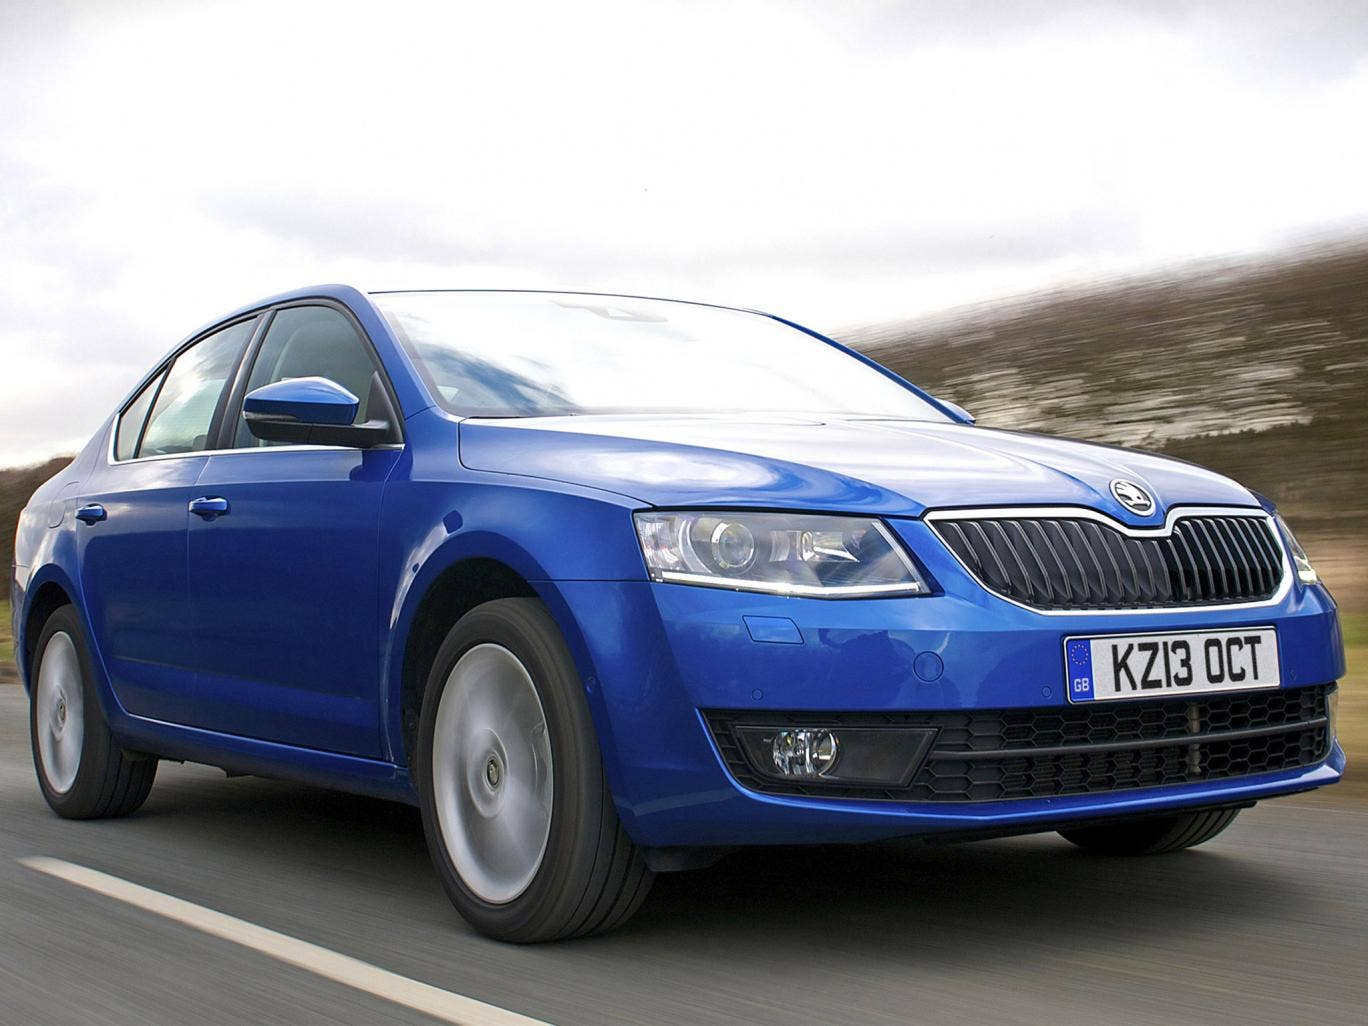 Without compromise: the new Skoda Octavia